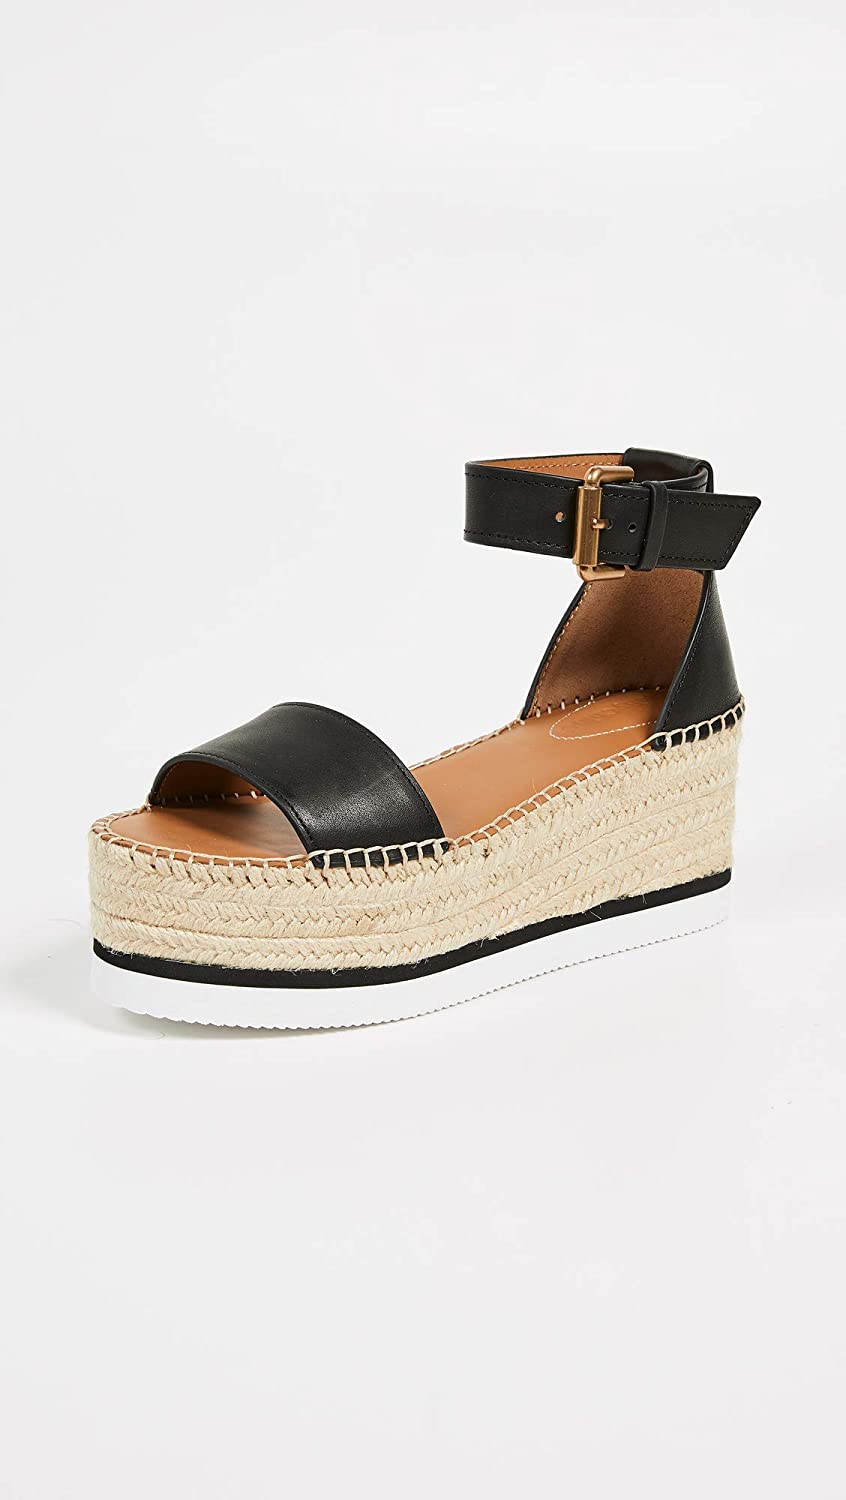 46f4a7dcf4b Amazon.com: See by Chloe Women's Glyn Mid Wedge Espadrilles: Shoes